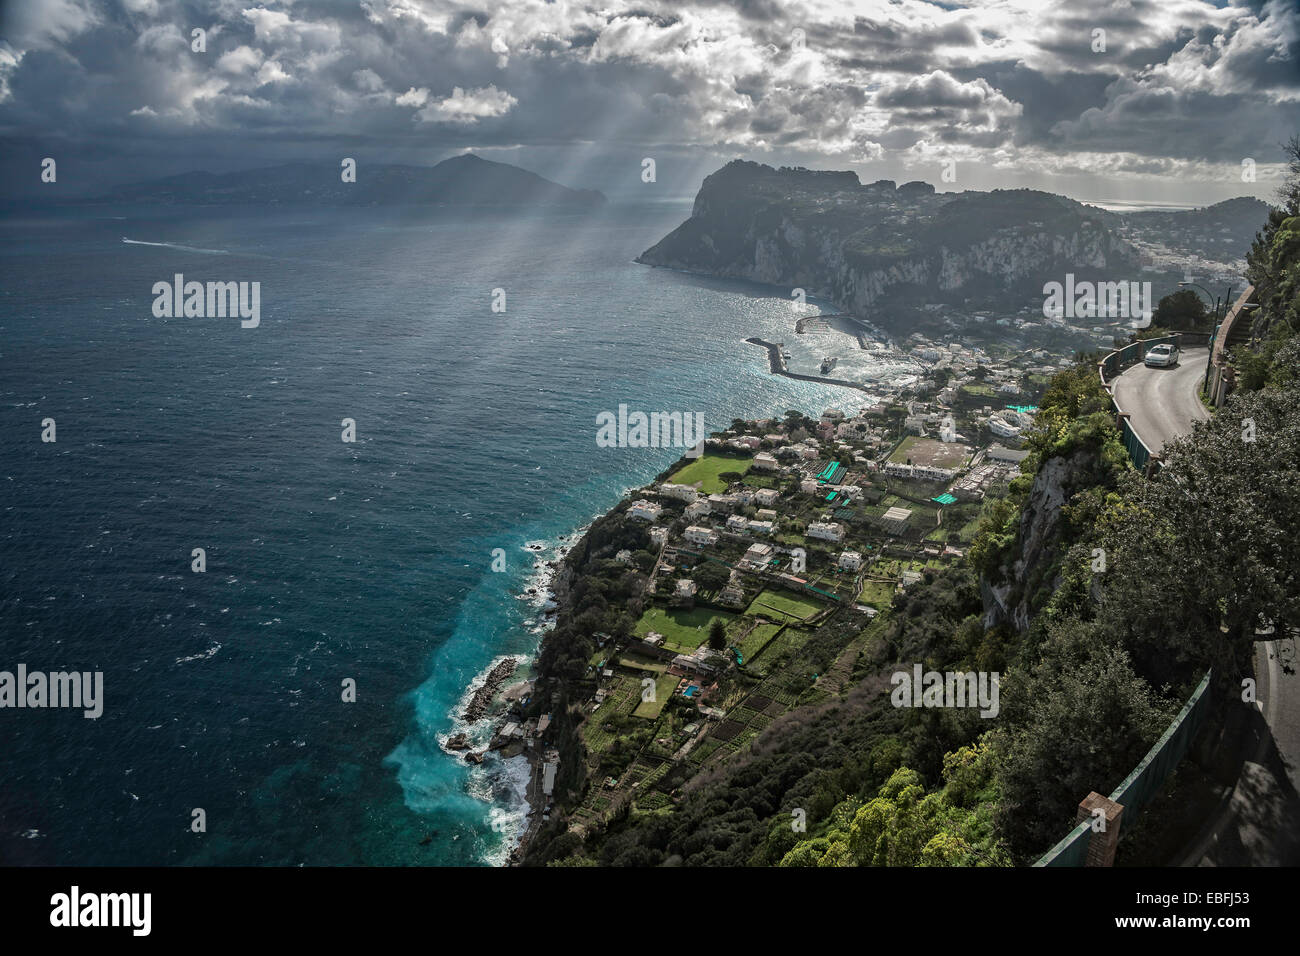 The Island of Capri. Photo is taken from Anacapri. - Stock Image